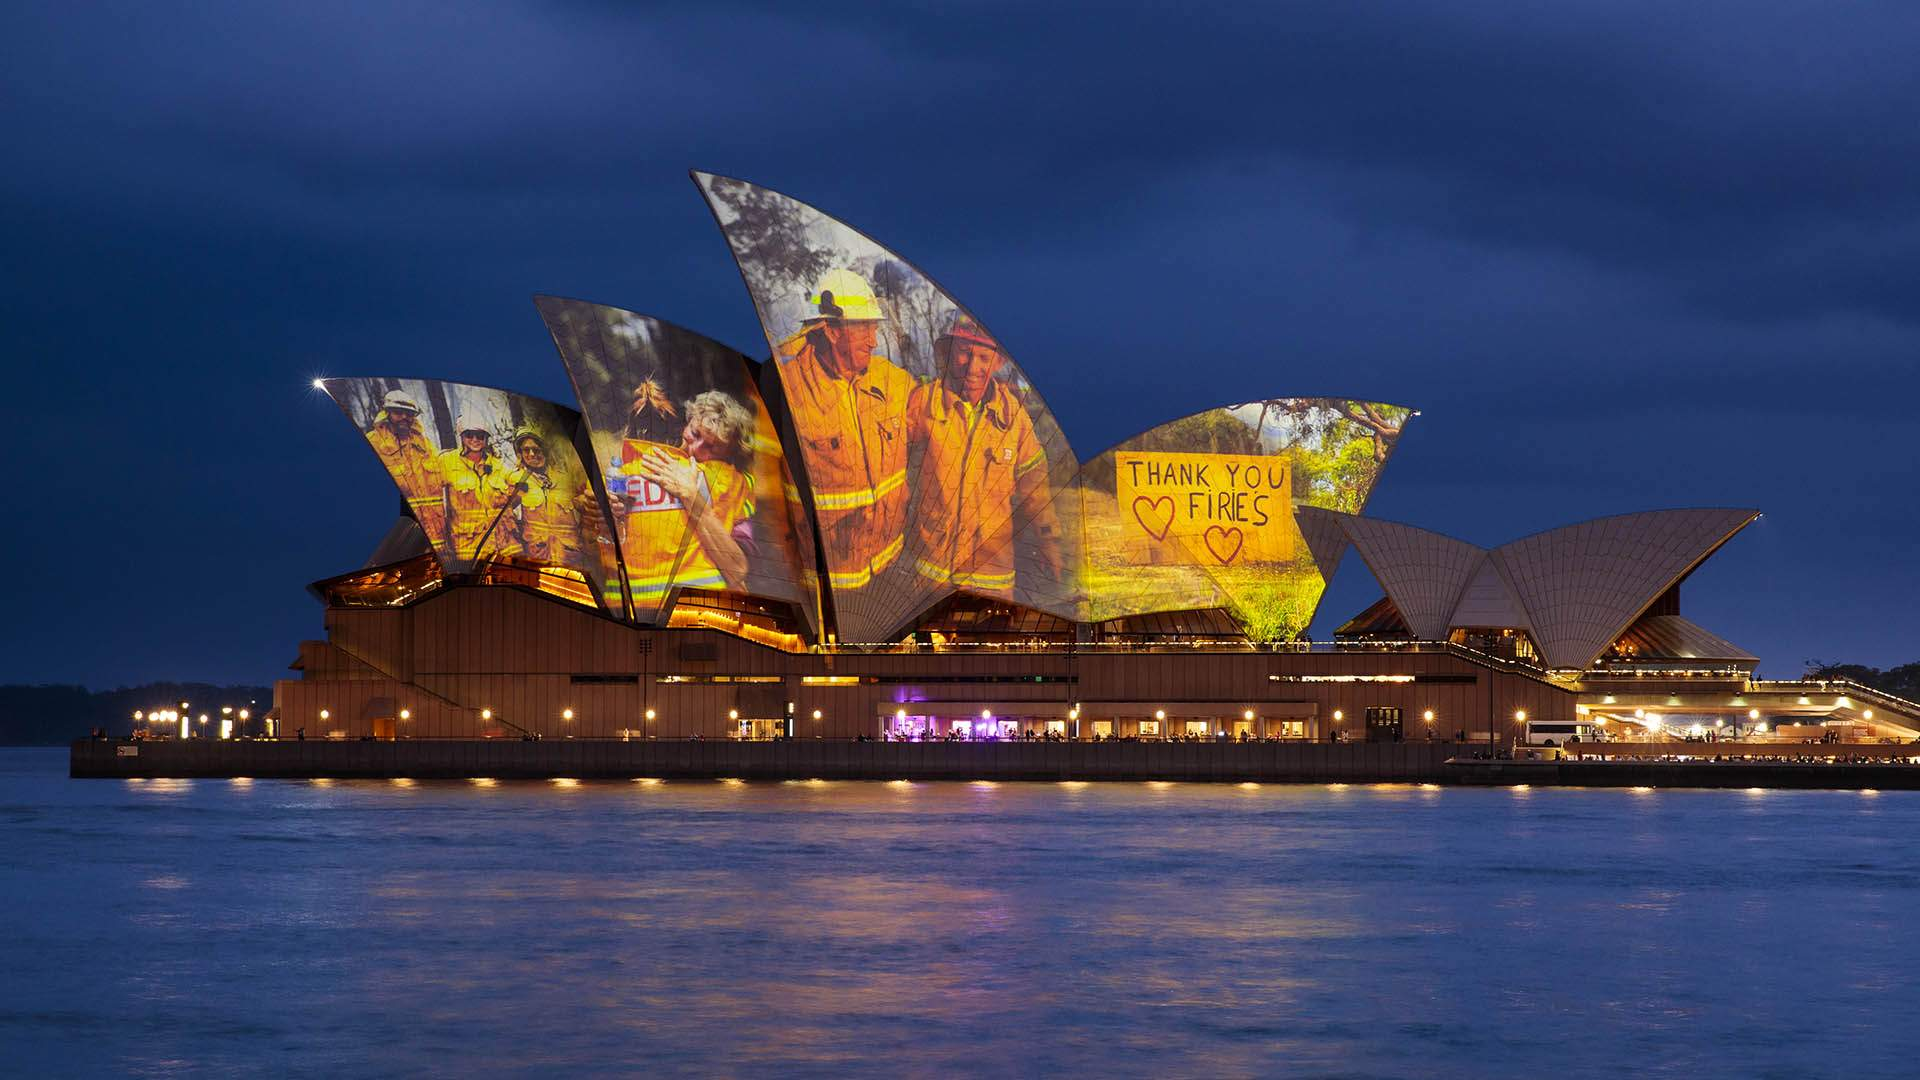 The Sydney Opera House Illuminated Its Sails with Images of Firefighters to Support Bushfire Relief